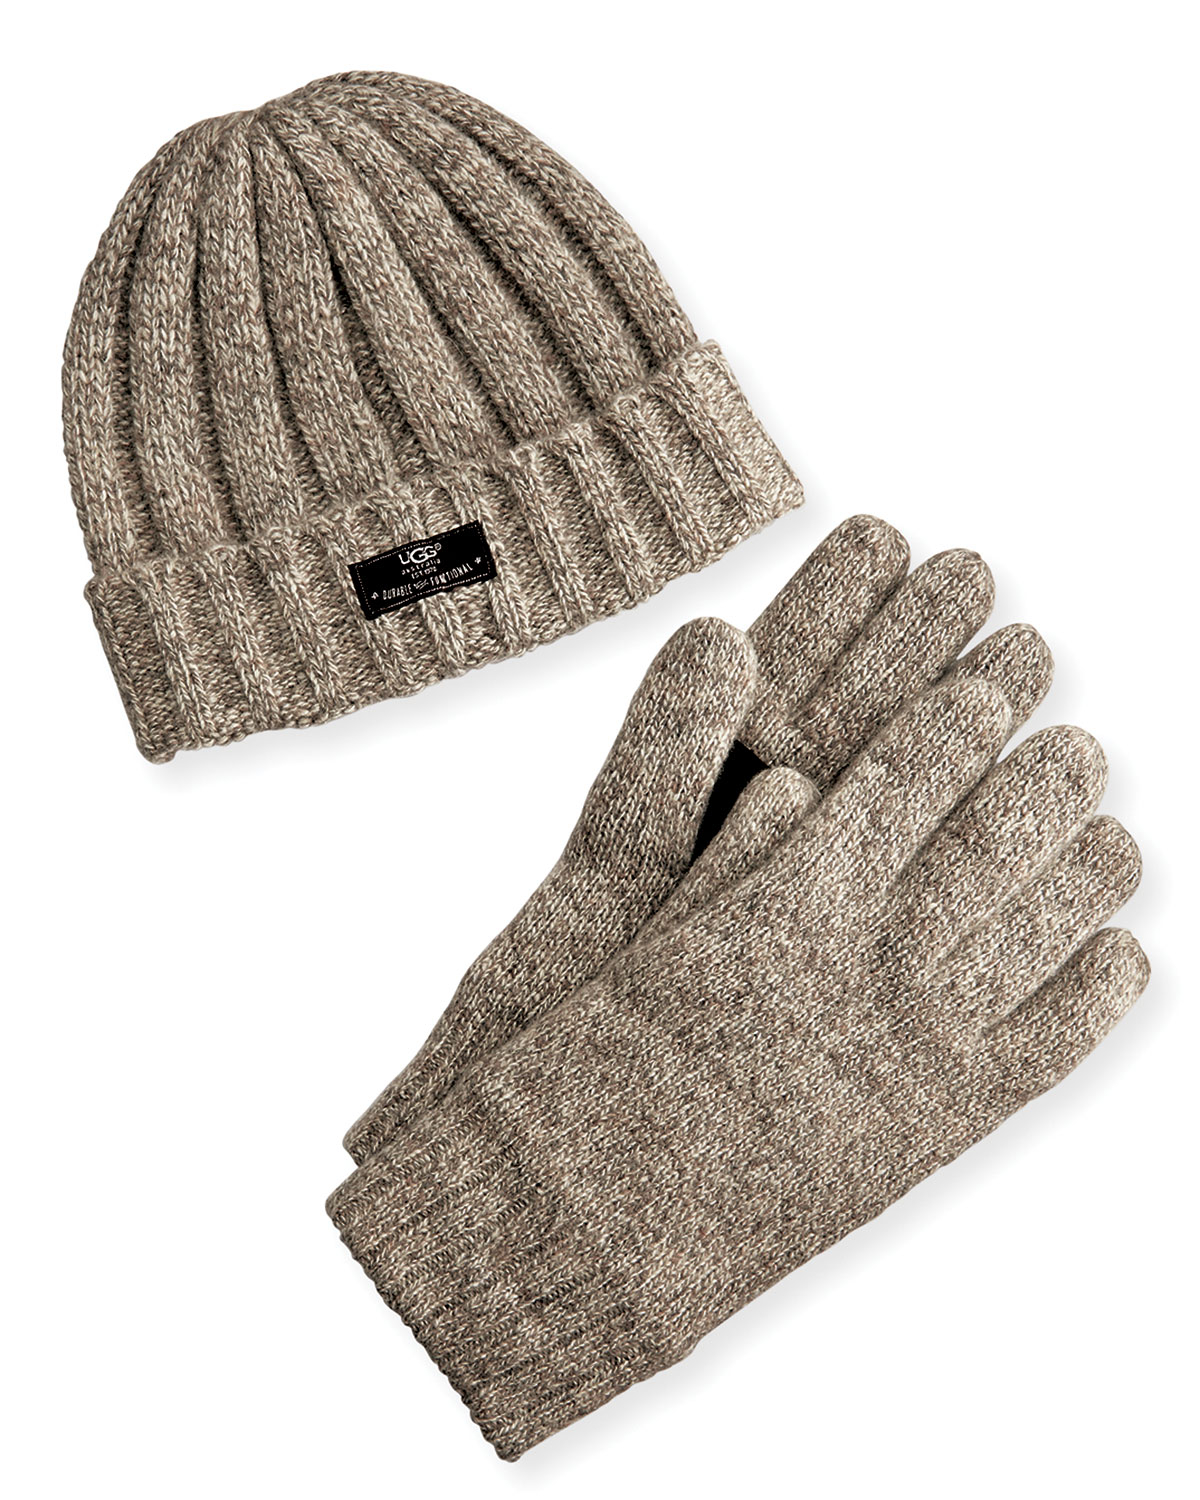 Hat & Glove Sets. invalid category id. Hat & Glove Sets. Showing 10 of 10 results that match your query. Search Product Result. Product - Polar Extreme Unisex Insulated Thermal Gloves with Fleece lining (S/M) Product Image. Price $ Product Title.